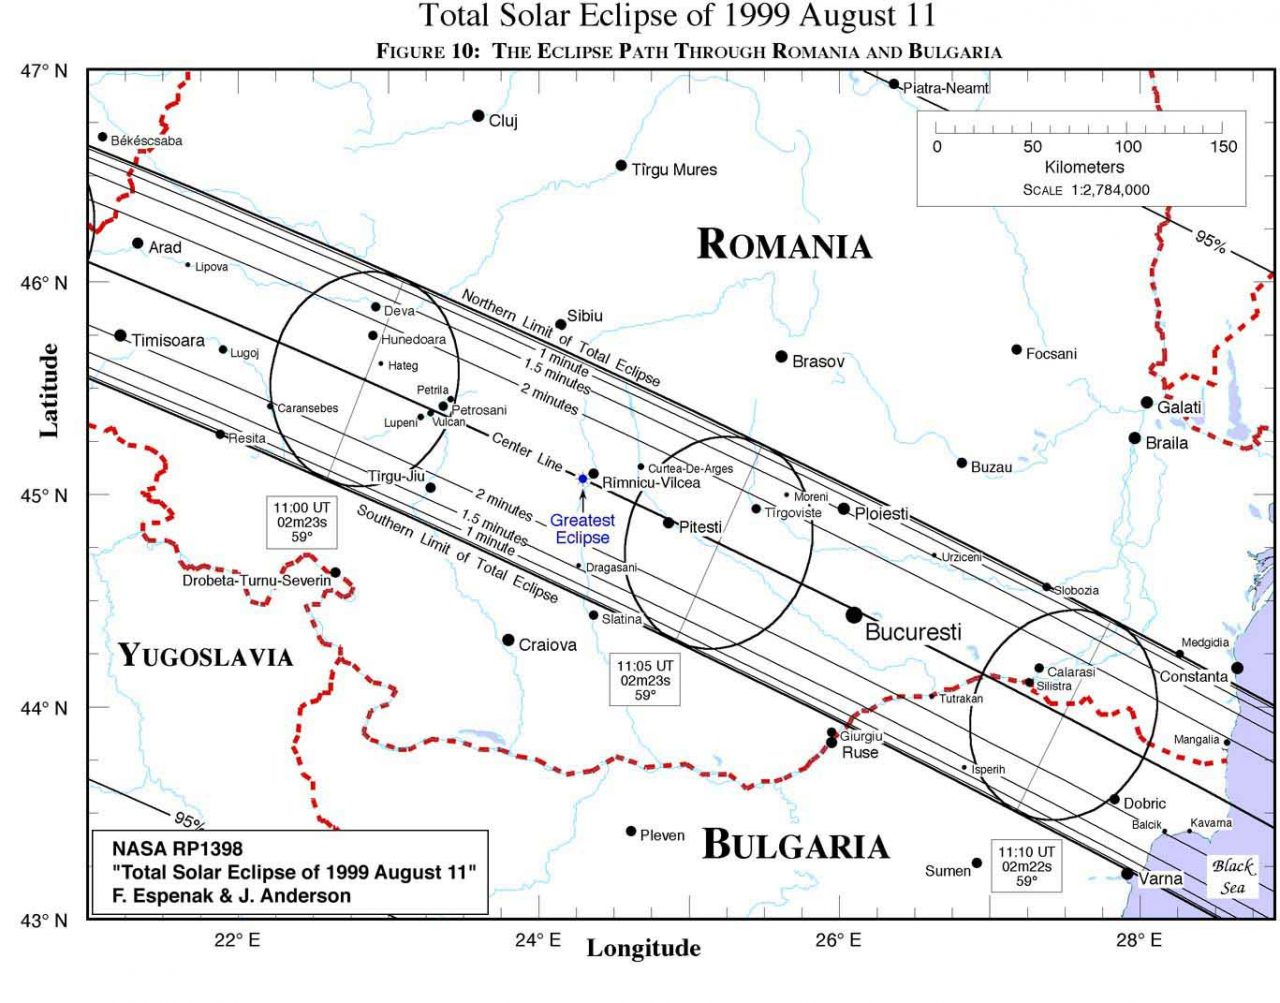 1999 Total Solar Eclipse in Romania